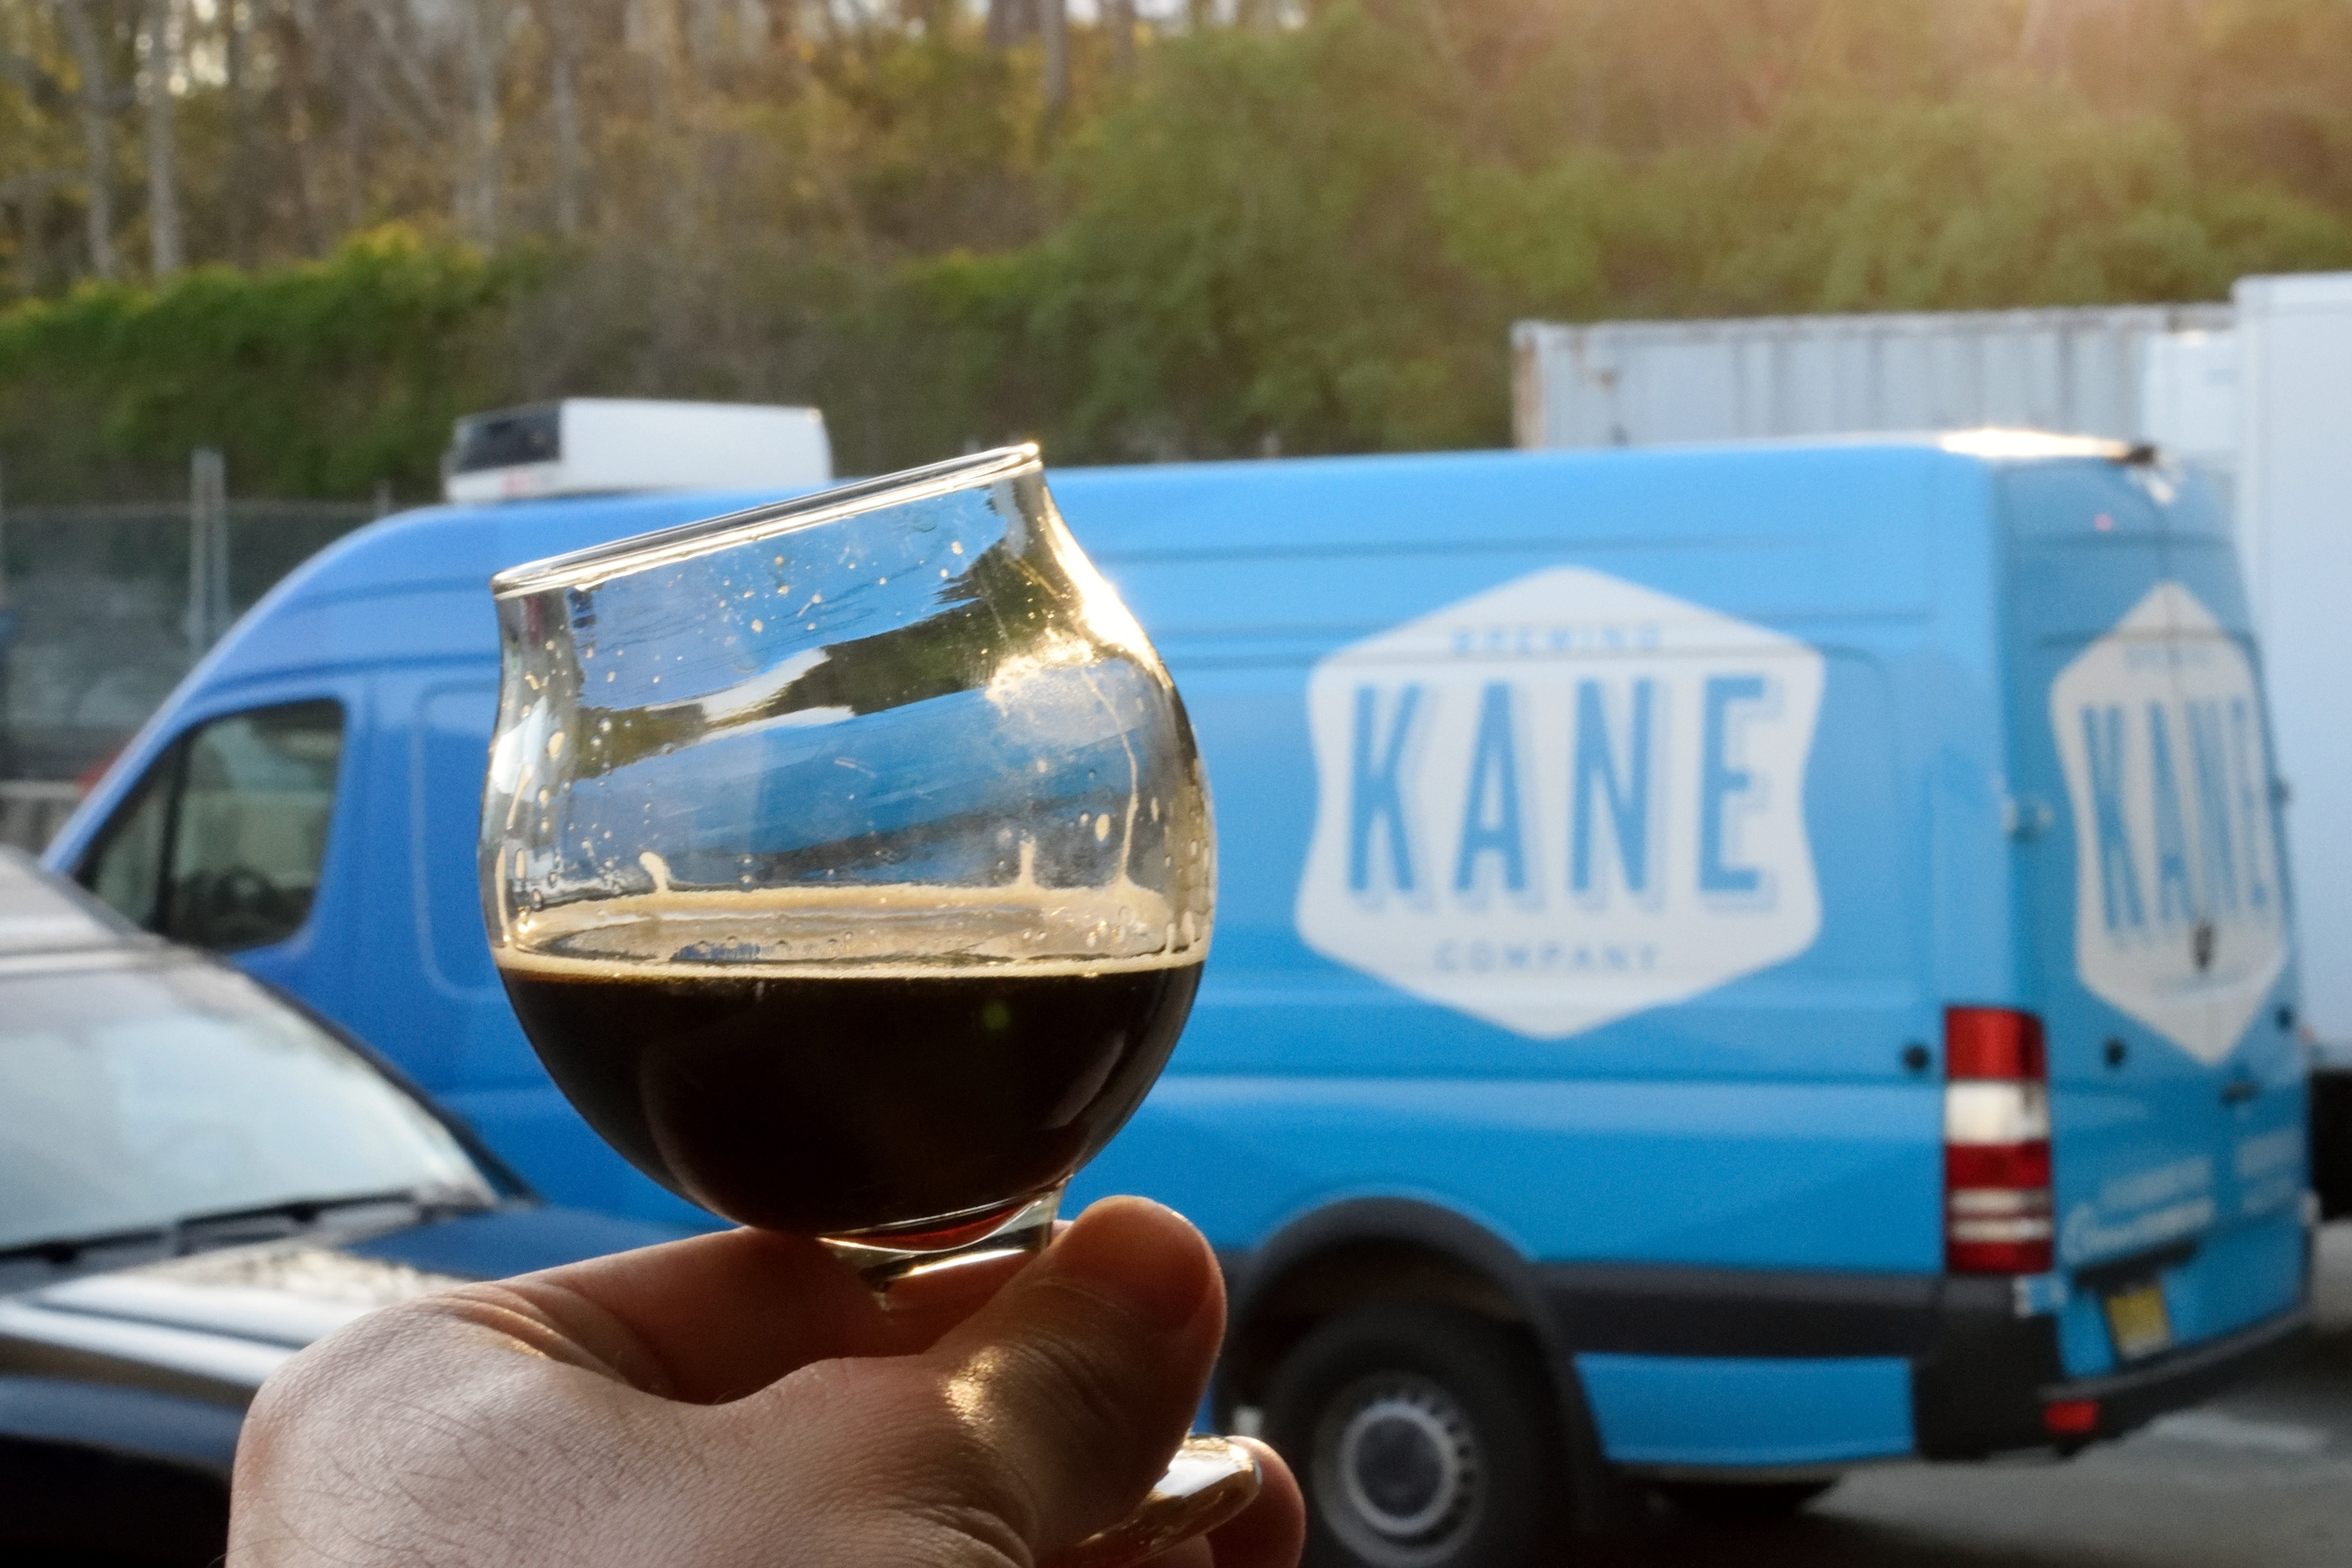 Cheers to Kane - one of New Jersey's best breweries.